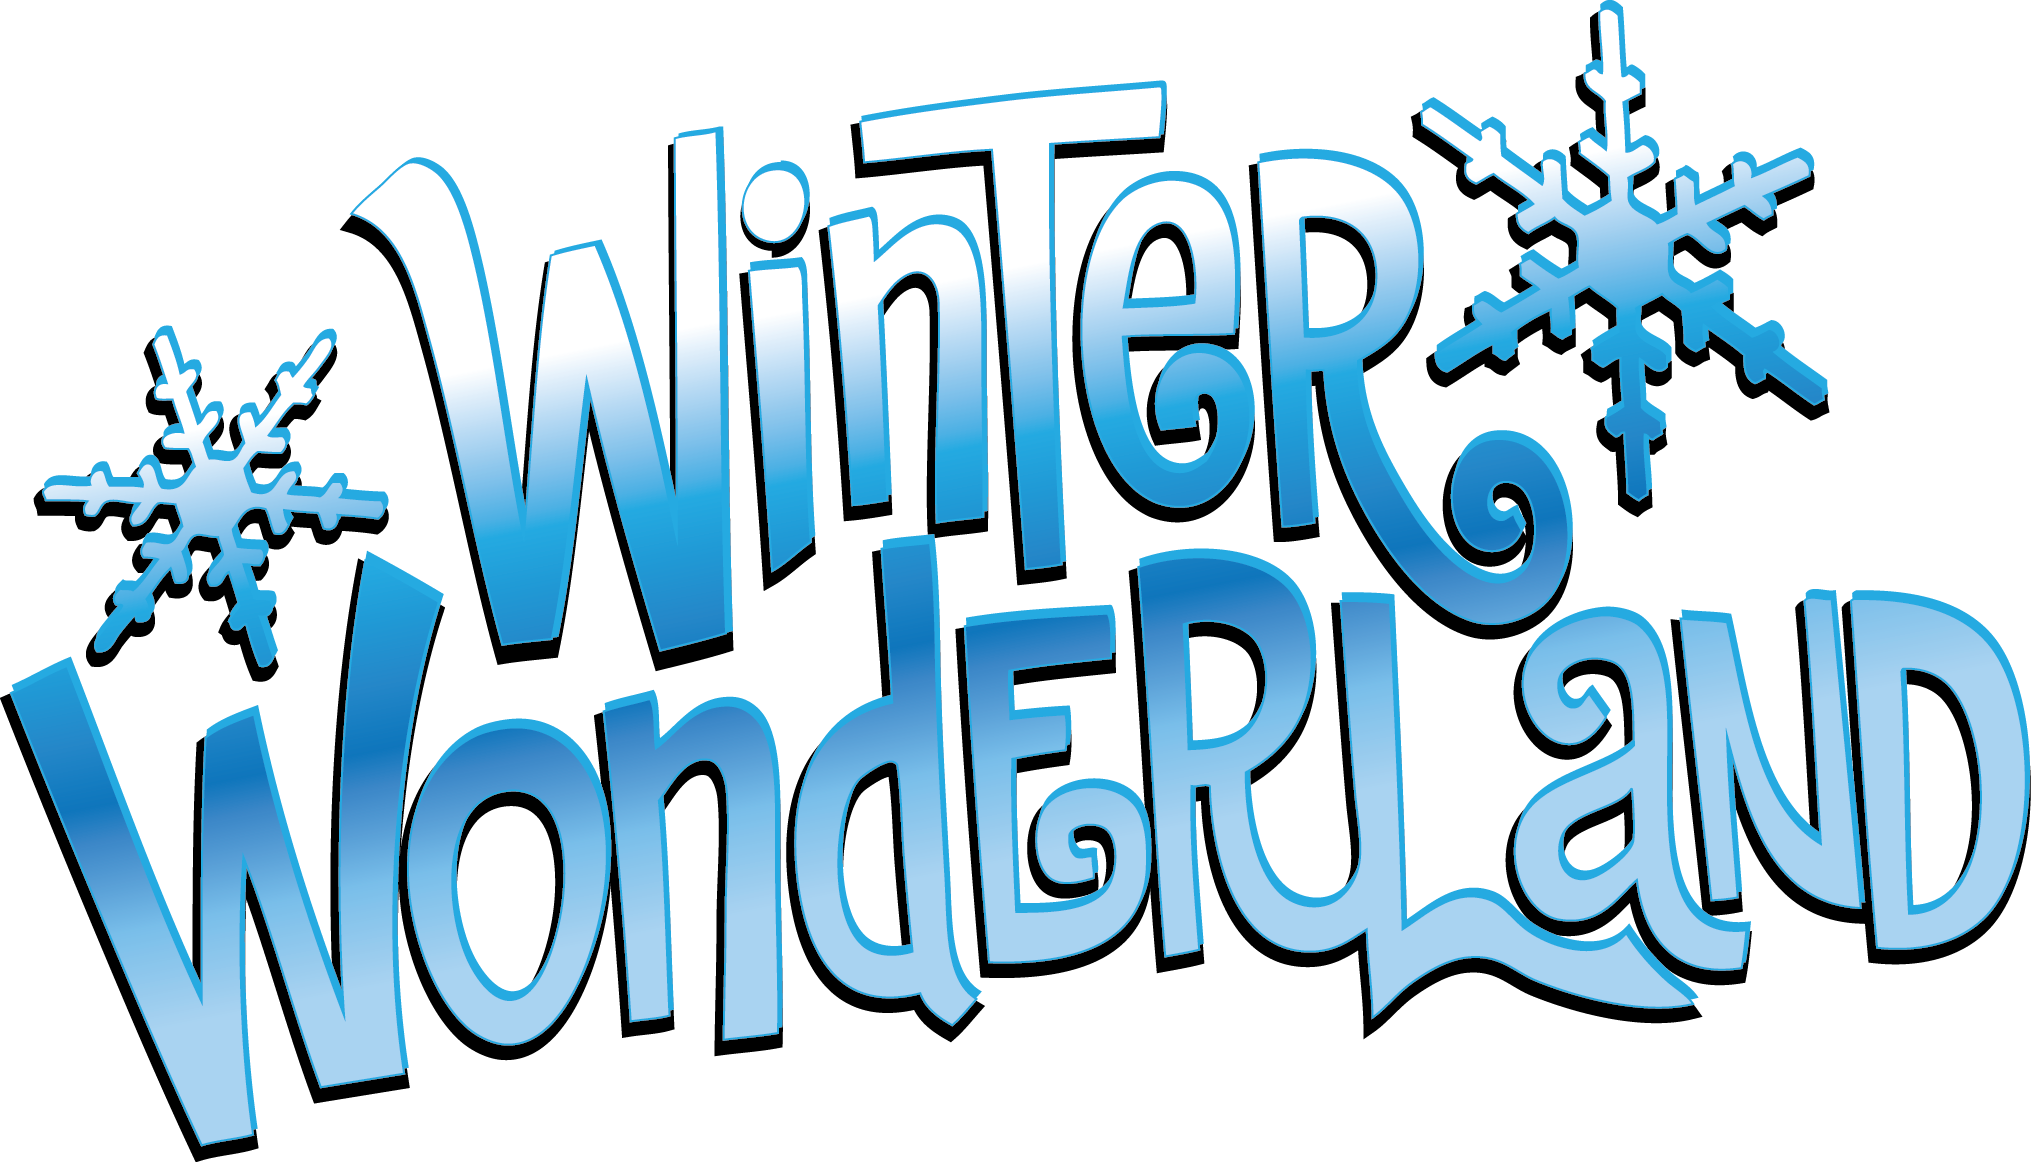 Winter Wonderland Clipart at GetDrawings.com.